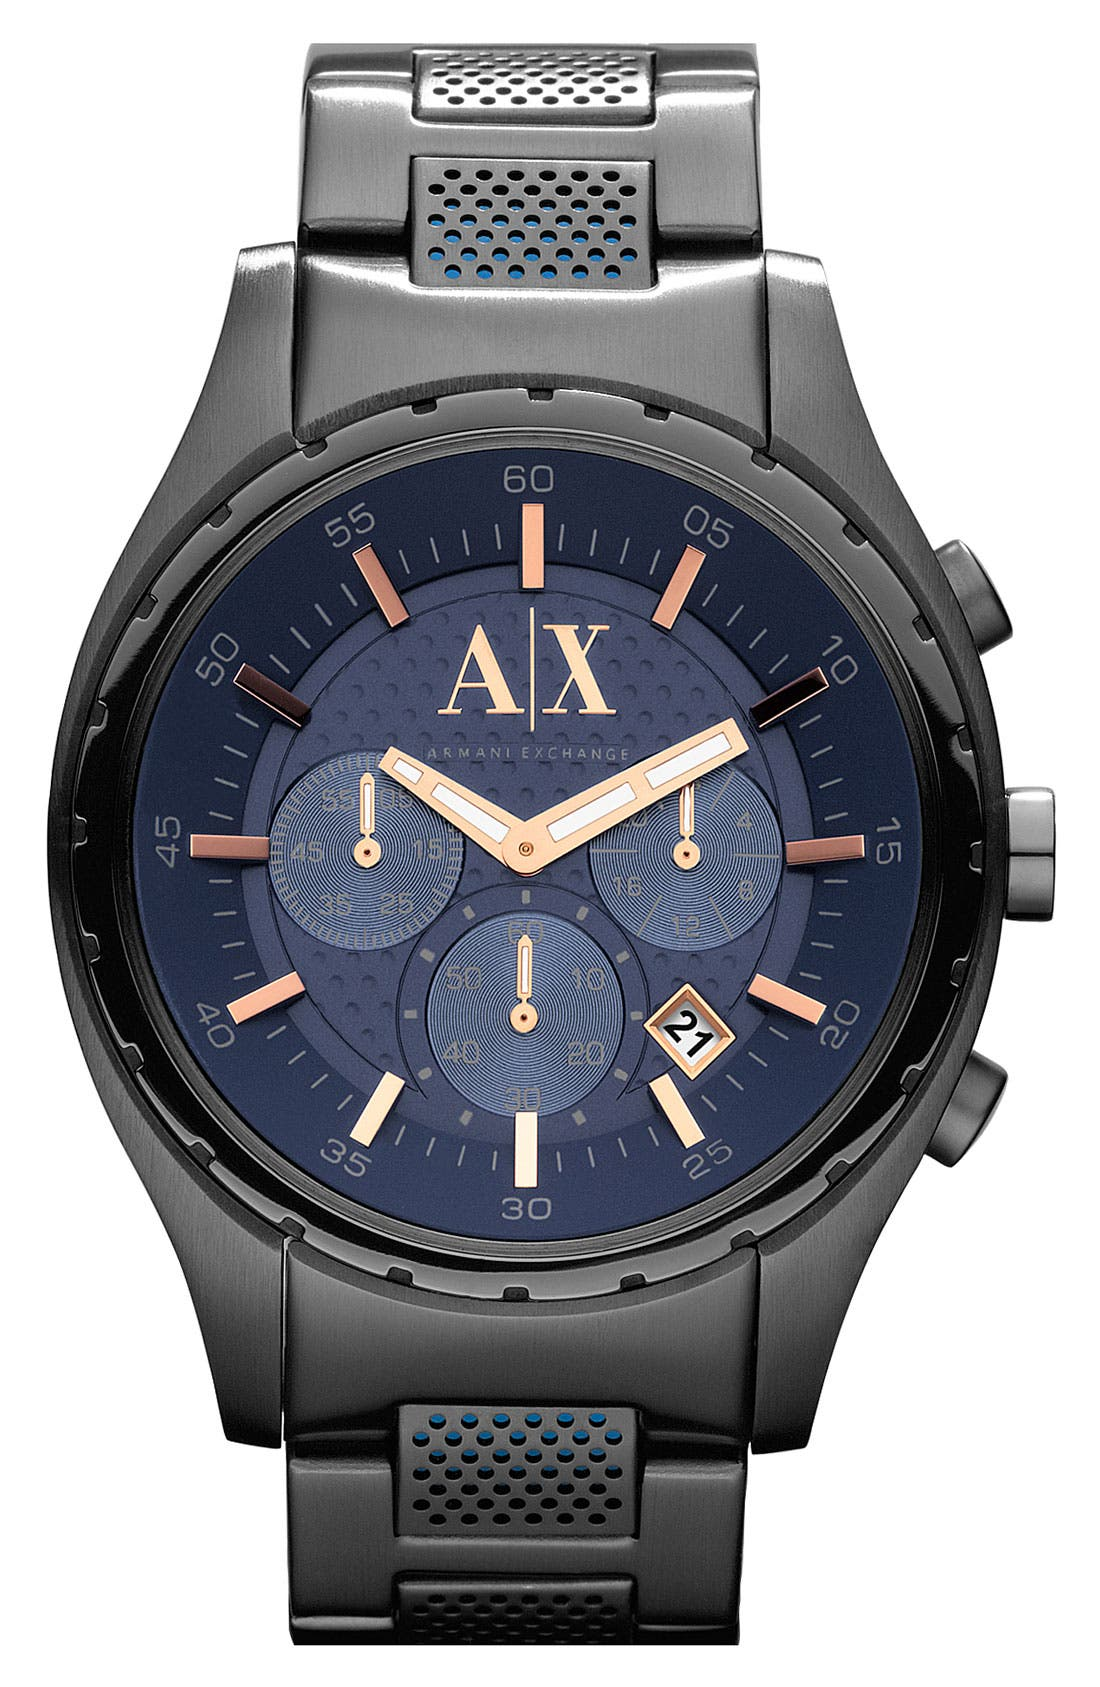 Main Image - AX Armani Exchange Chronograph Bracelet Watch, 45mm